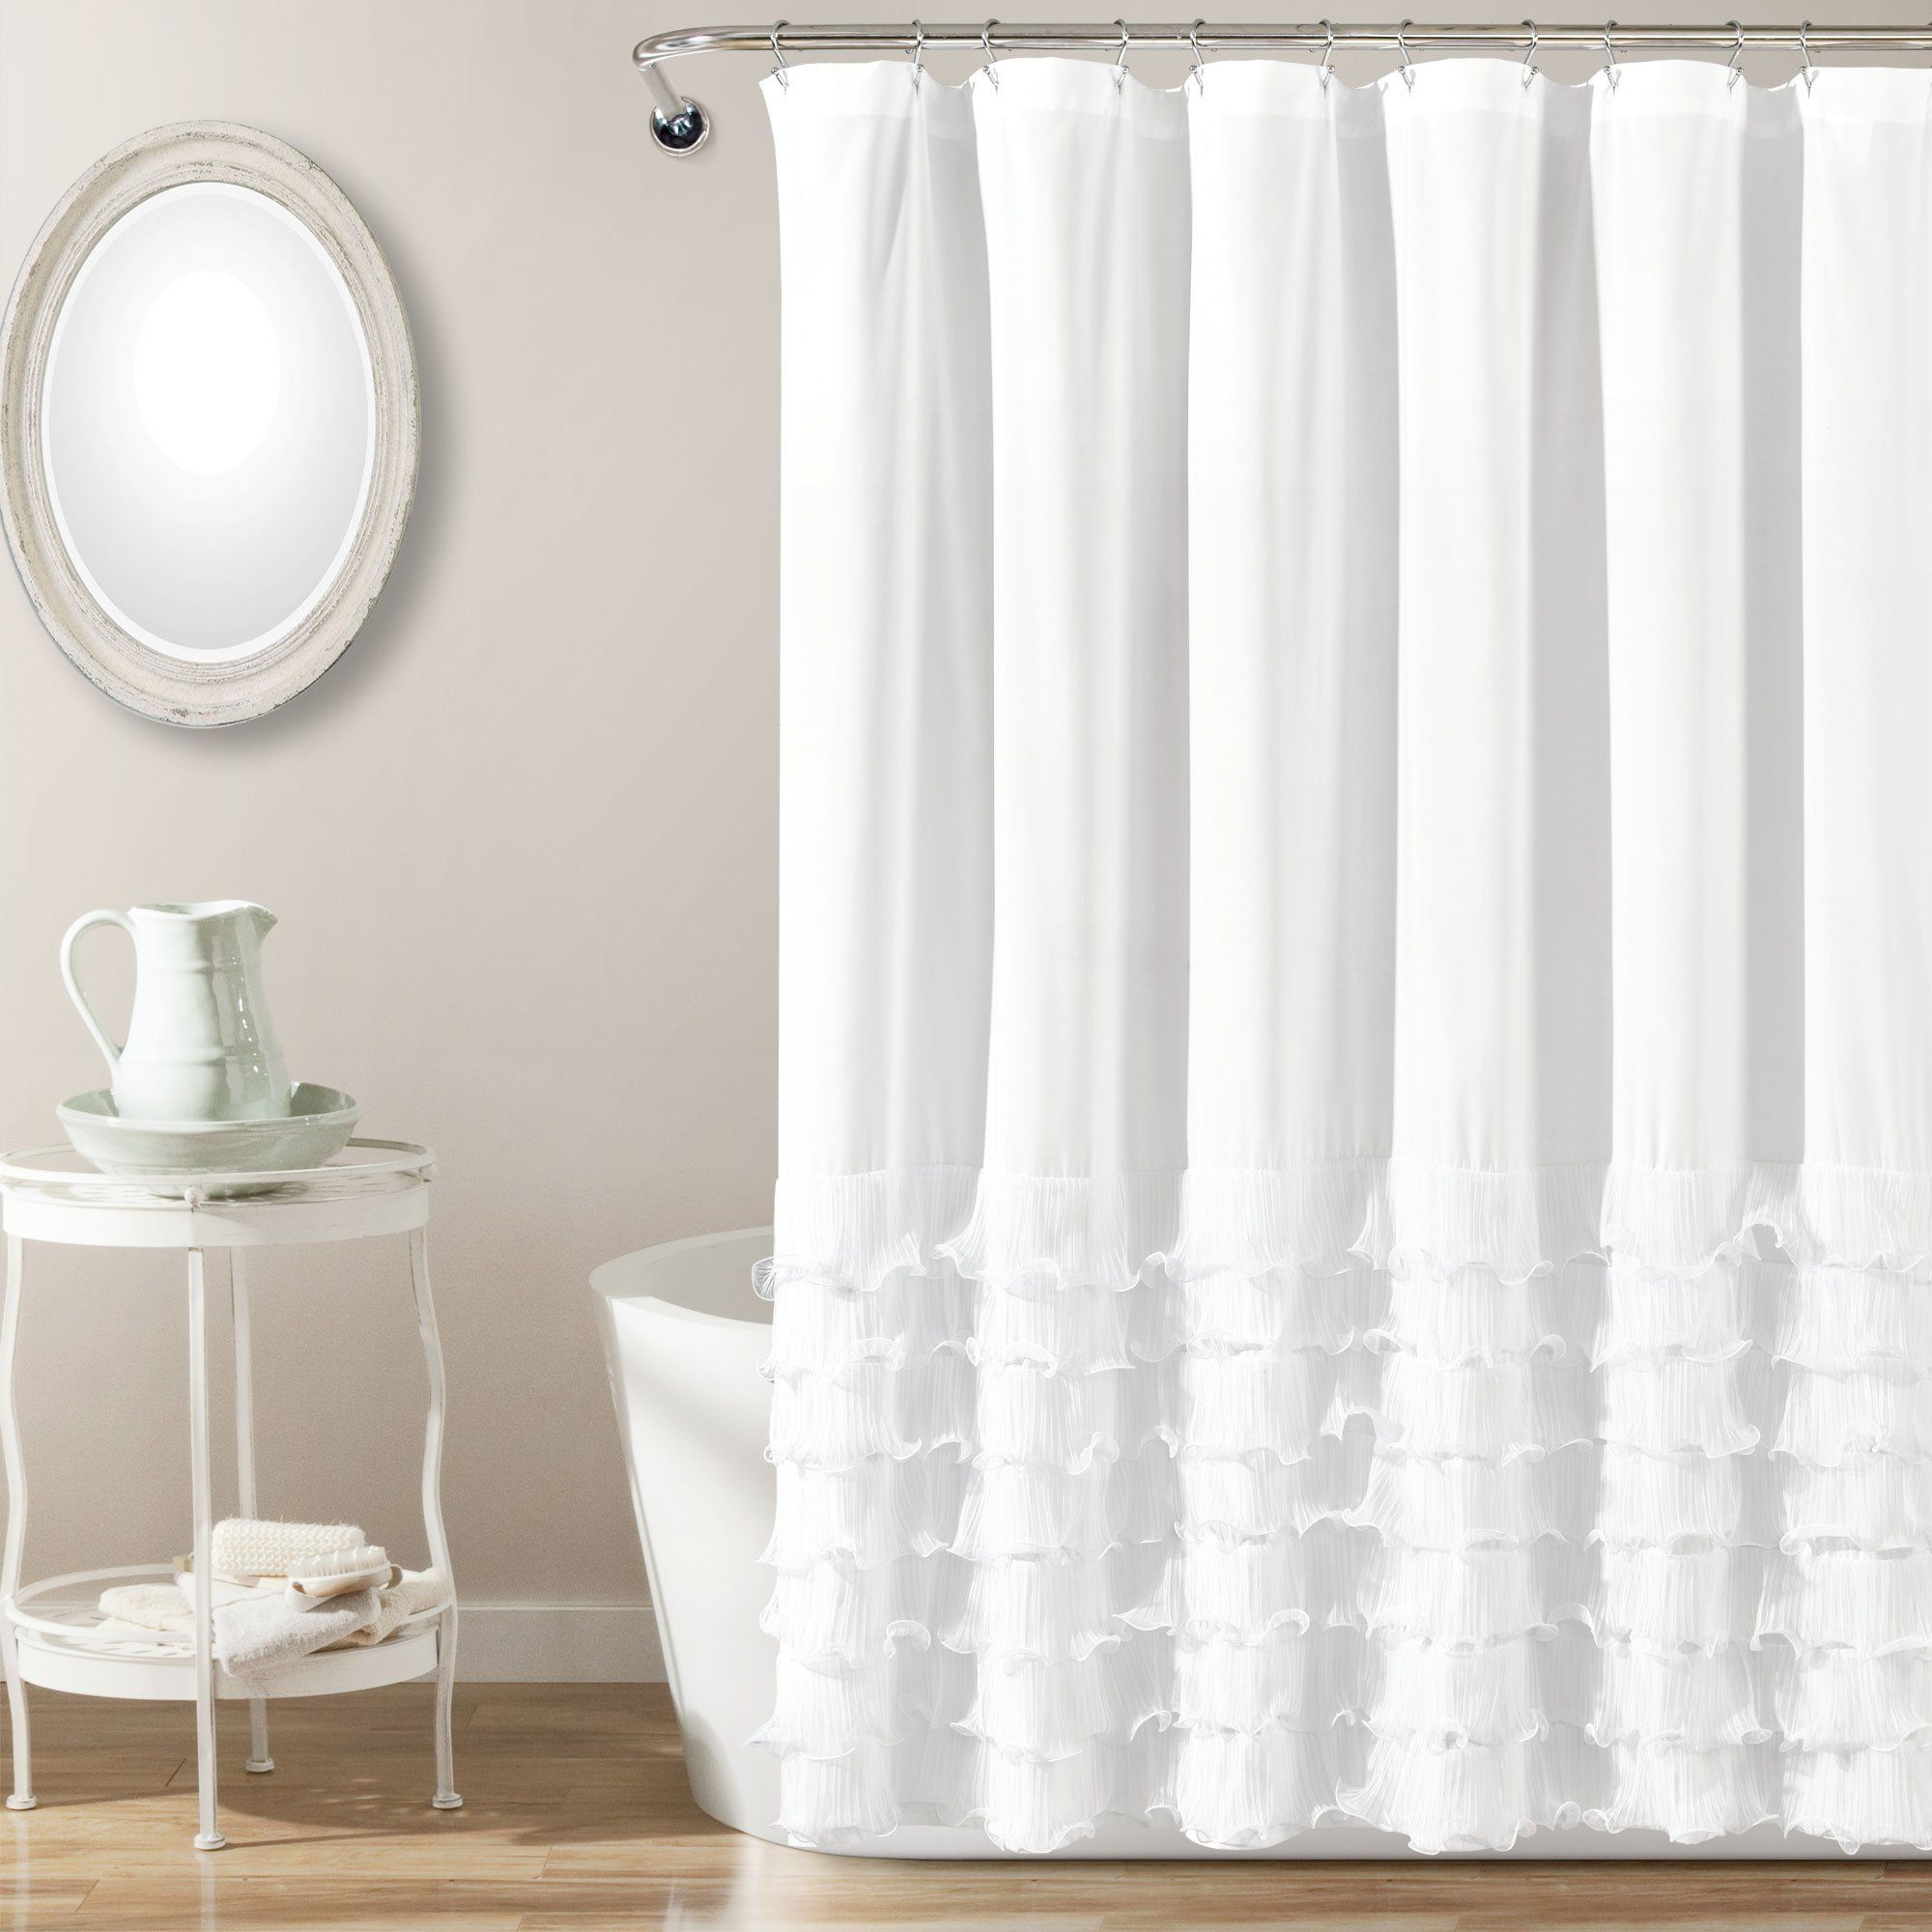 Avery Shower Curtain In 2020 Elegant Shower Curtains Shower